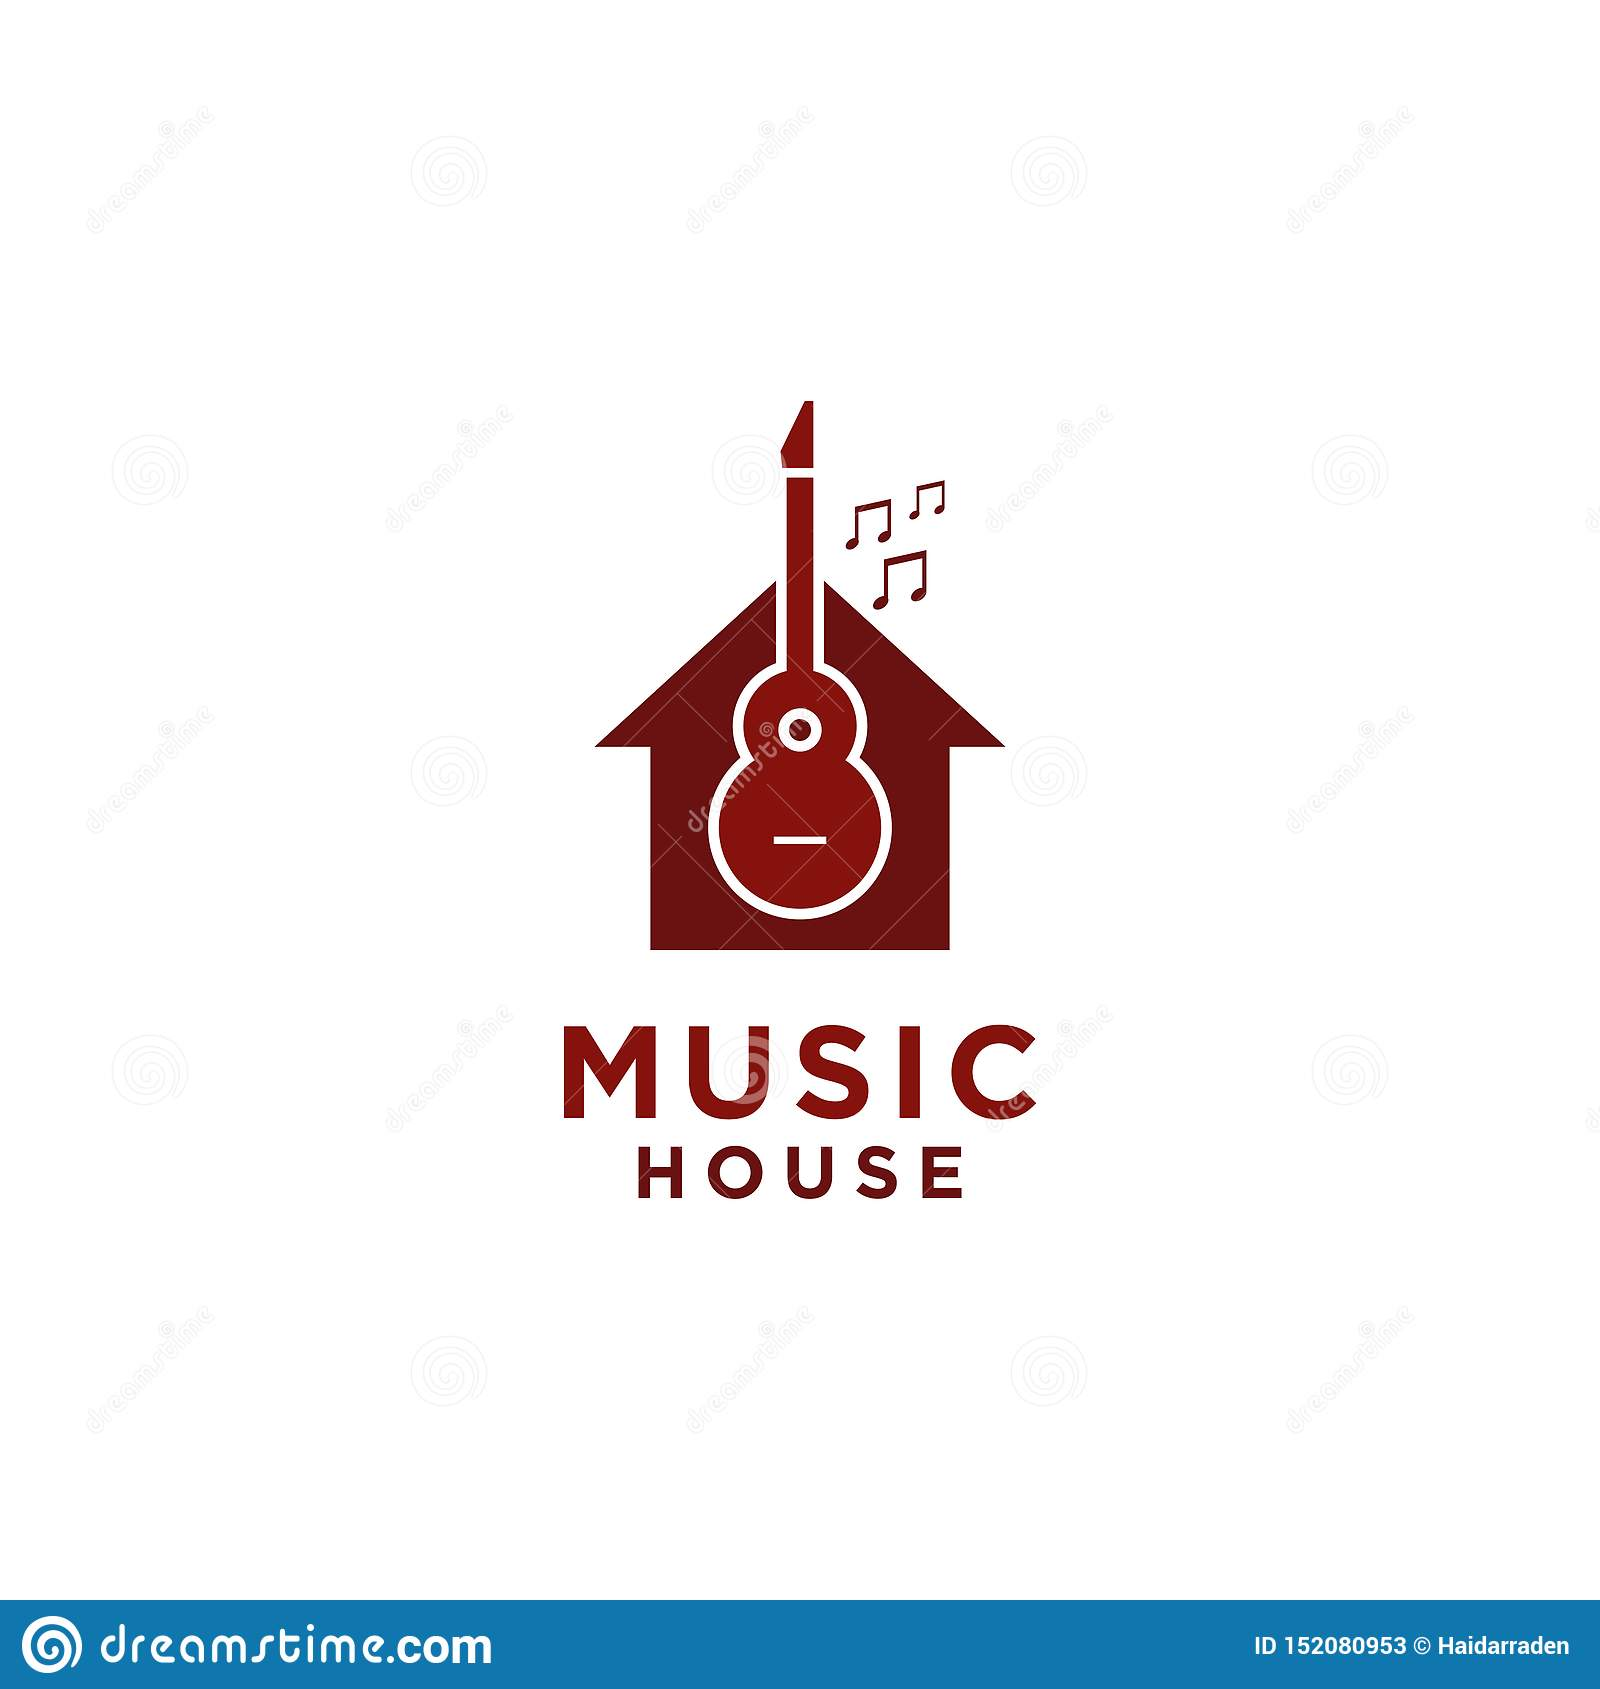 Music House Logo design with guitar symbol and tone